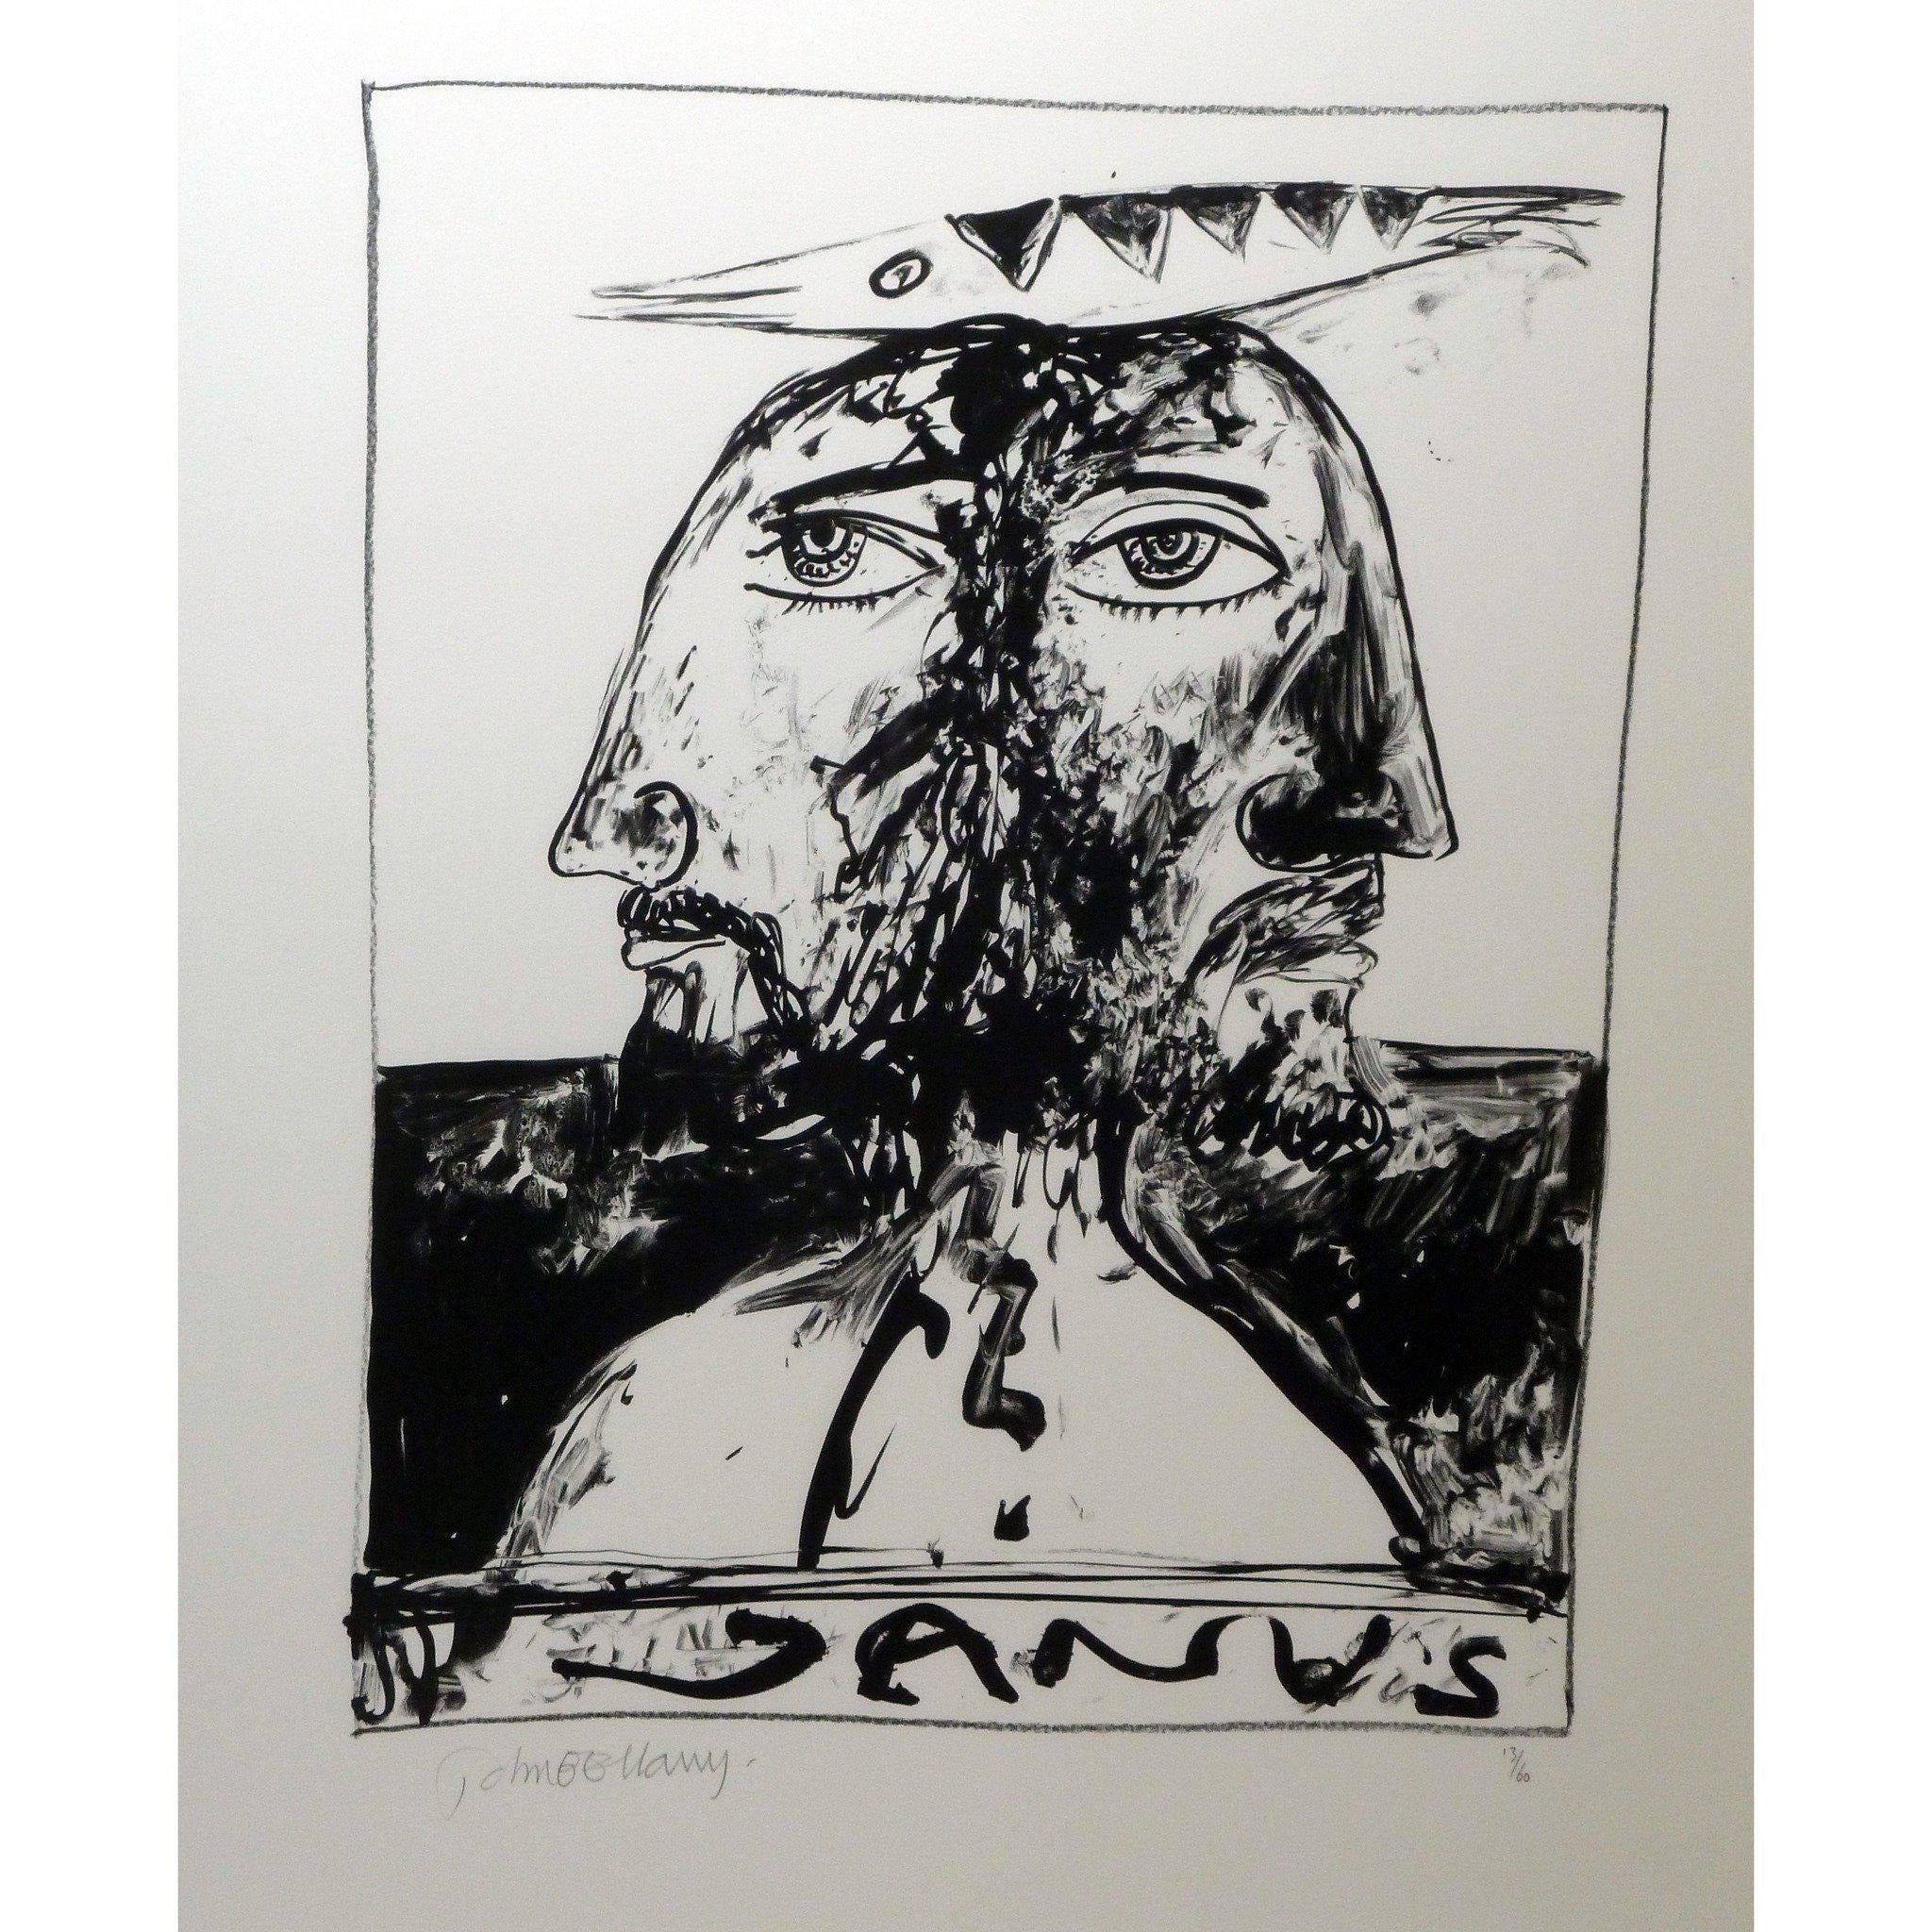 John Bellany Signed Ltd Ed Lithograph Print - Call of the sea suite 3